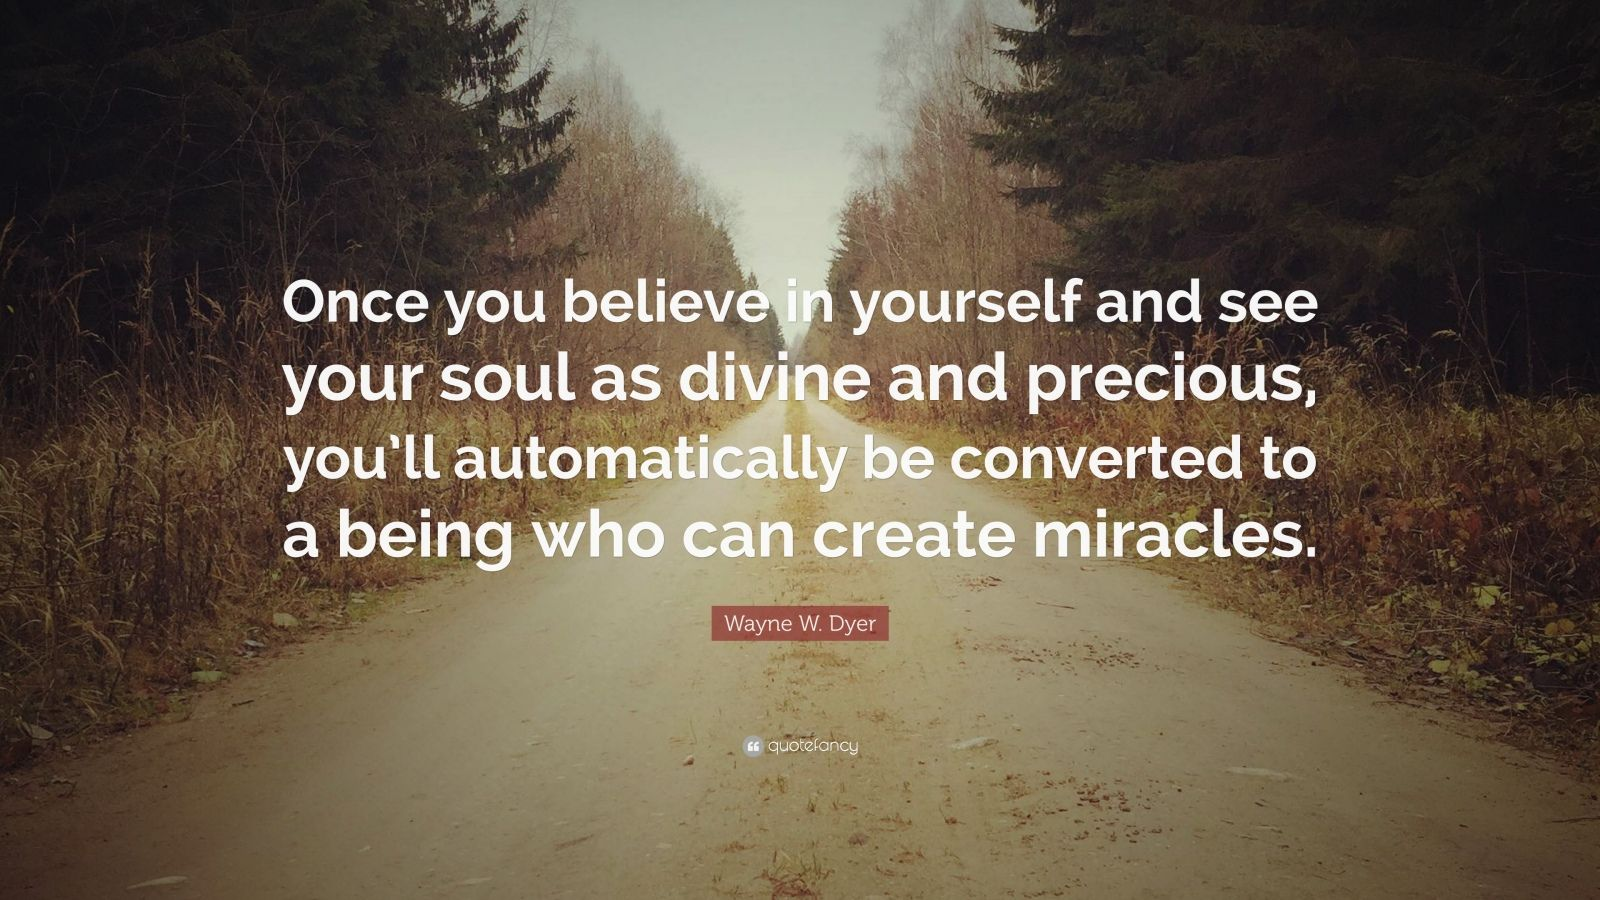 """Wayne W. Dyer Quote: """"Once you believe in yourself and see your soul as divine and precious, you'll automatically be converted to a being who can create miracles."""""""